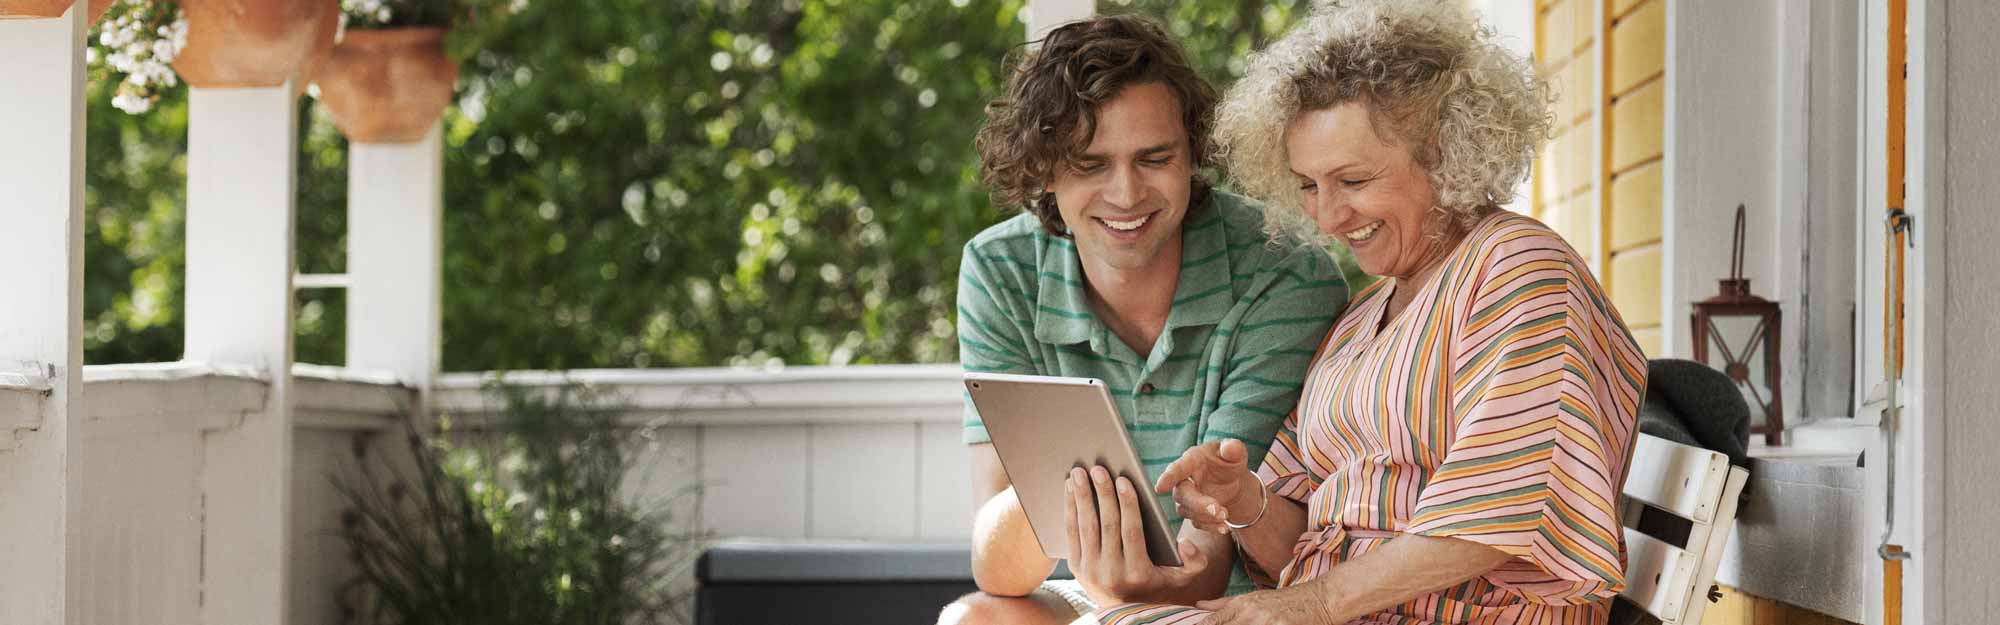 Mother and adult son looking at a laptop on the porch